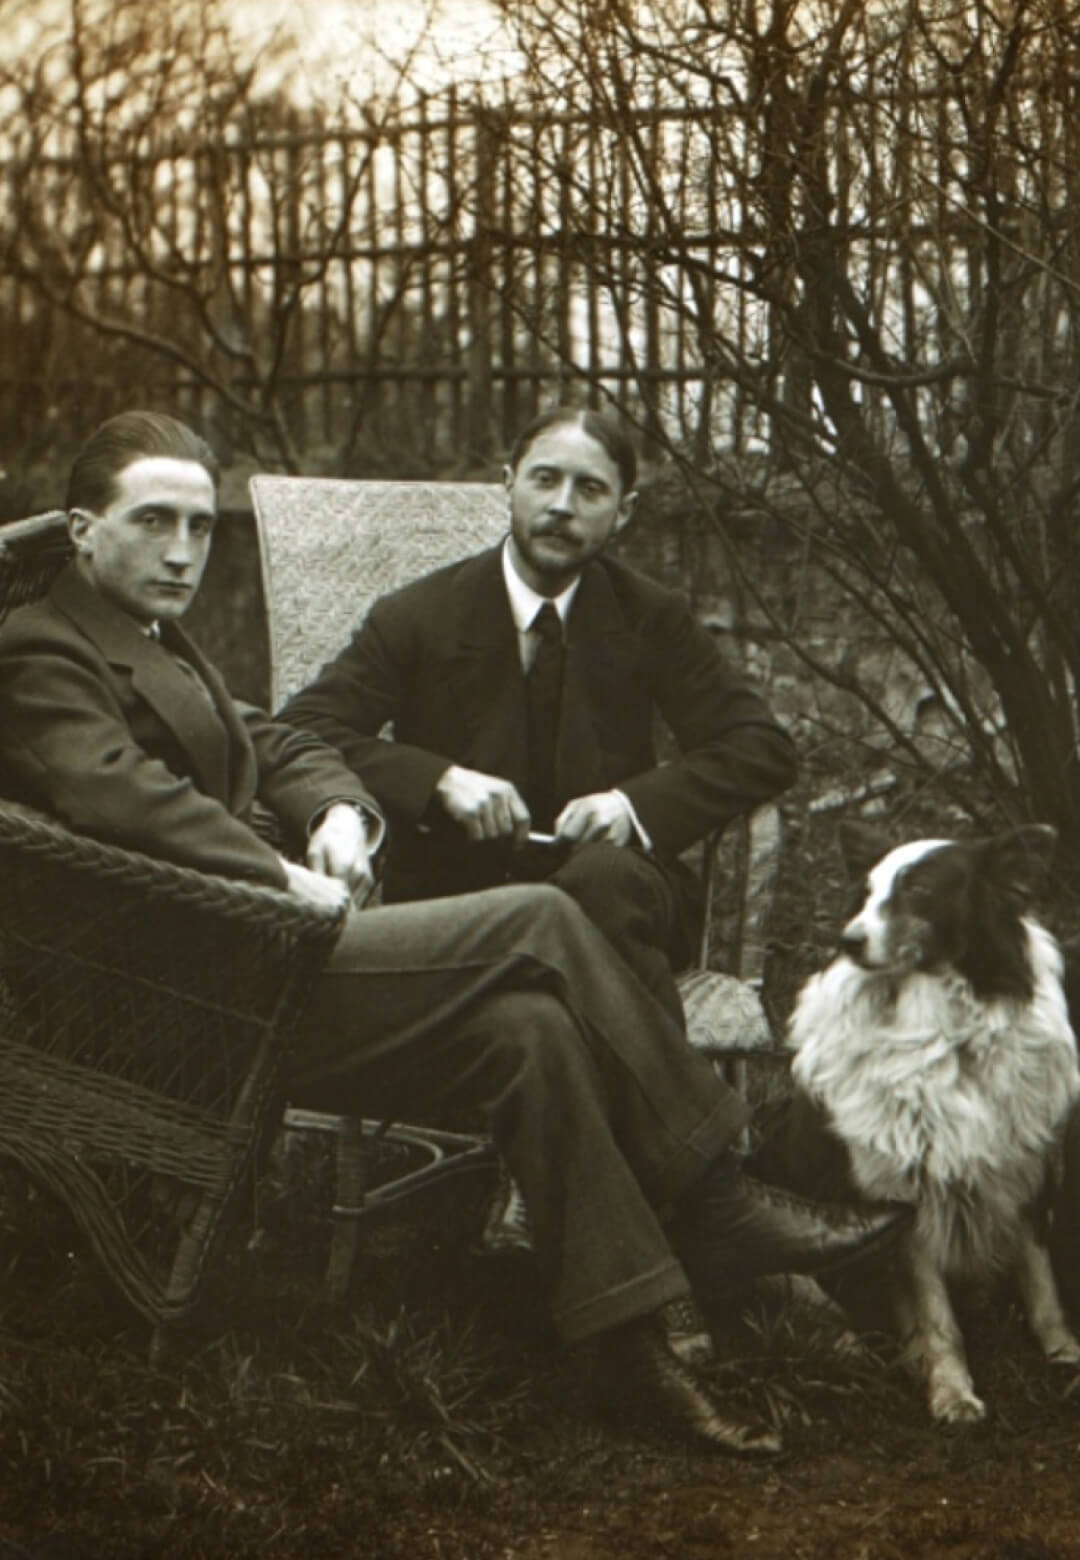 Marcel Duchamp with his brothers, Jacques Villion and Raymond Duchamp-Villion, in the garden of Villion's studio in Putteaux, France | Marcel Duchamp: The Art of the Possible| STIRworld